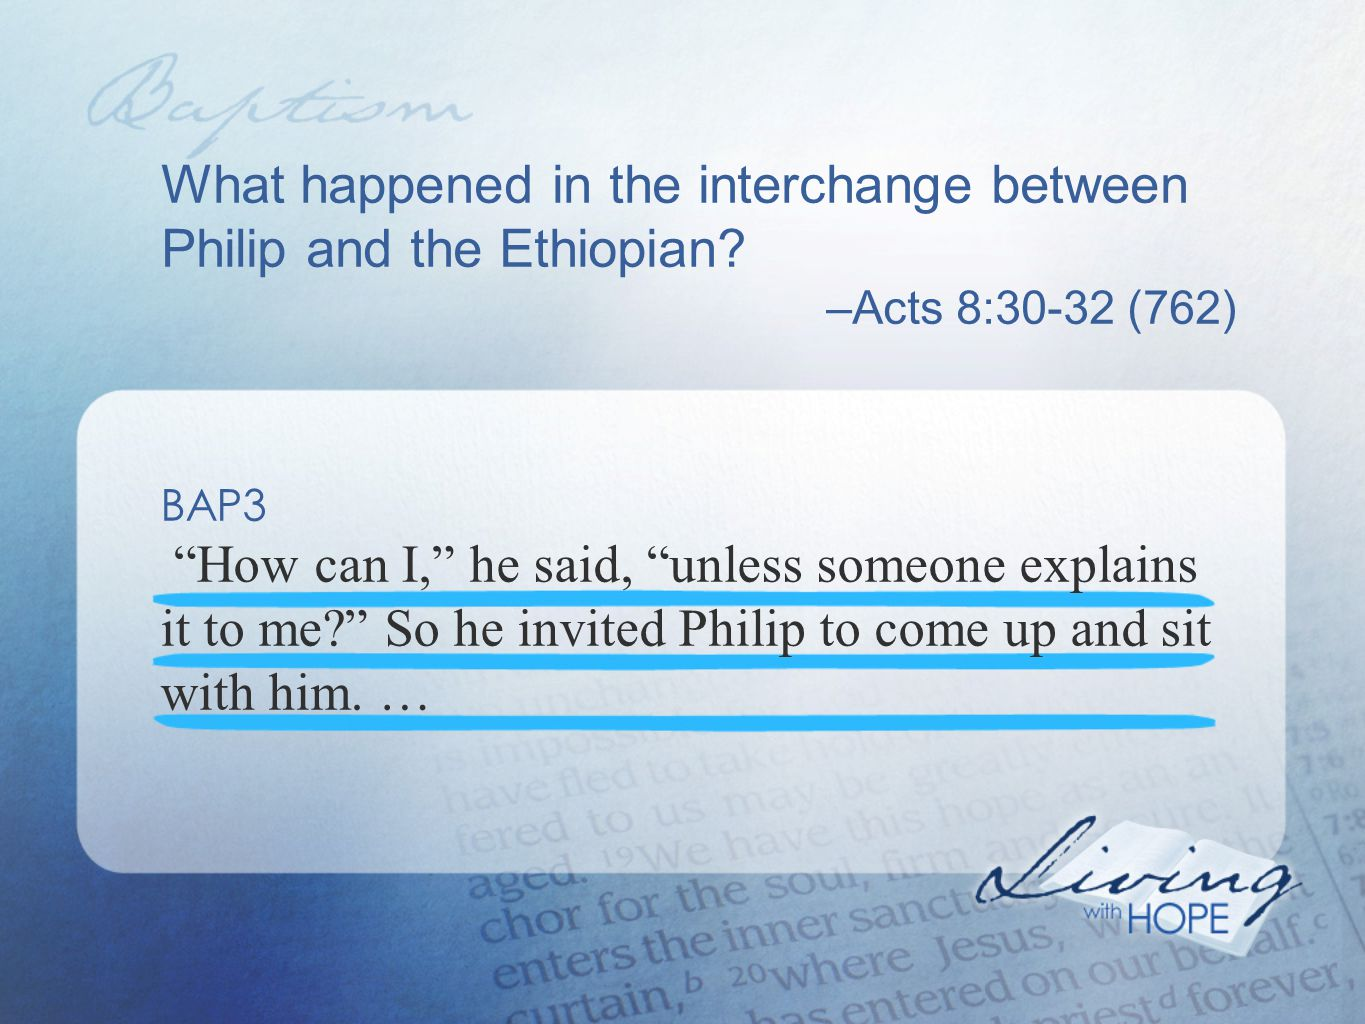 What happened in the interchange between Philip and the Ethiopian.